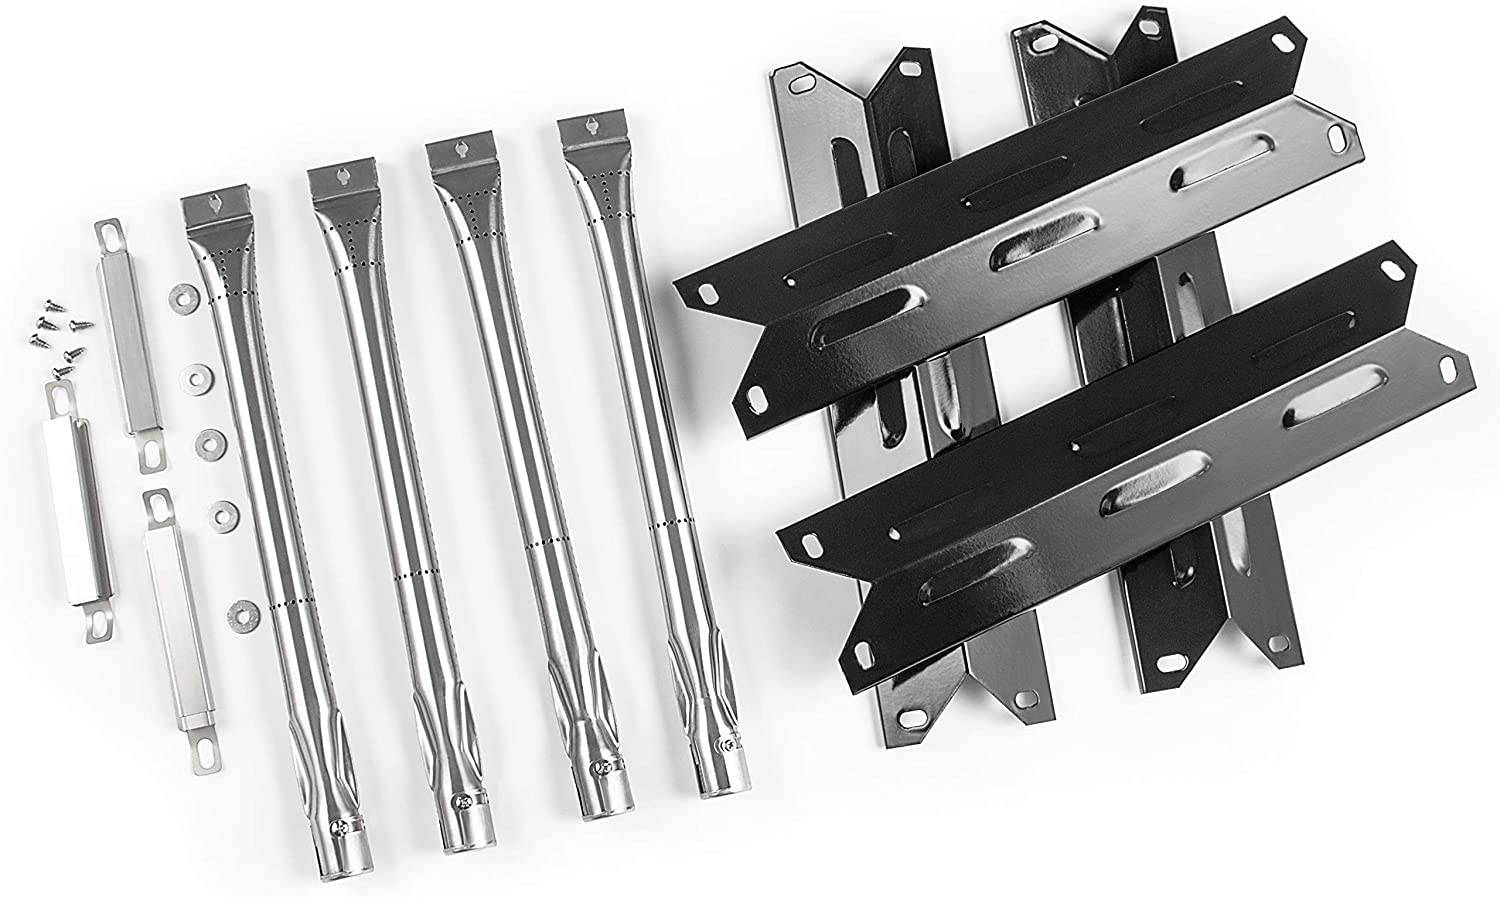 Grill Parts Kit for Kenmore 146.34611410, 146.23678310, 146.10016510, 146.16197210, 146.16132110, 146.34461410, 146.16142210, 146.23679310, 146.16198211, 146.46372610, 146.34611410, 146.10016510